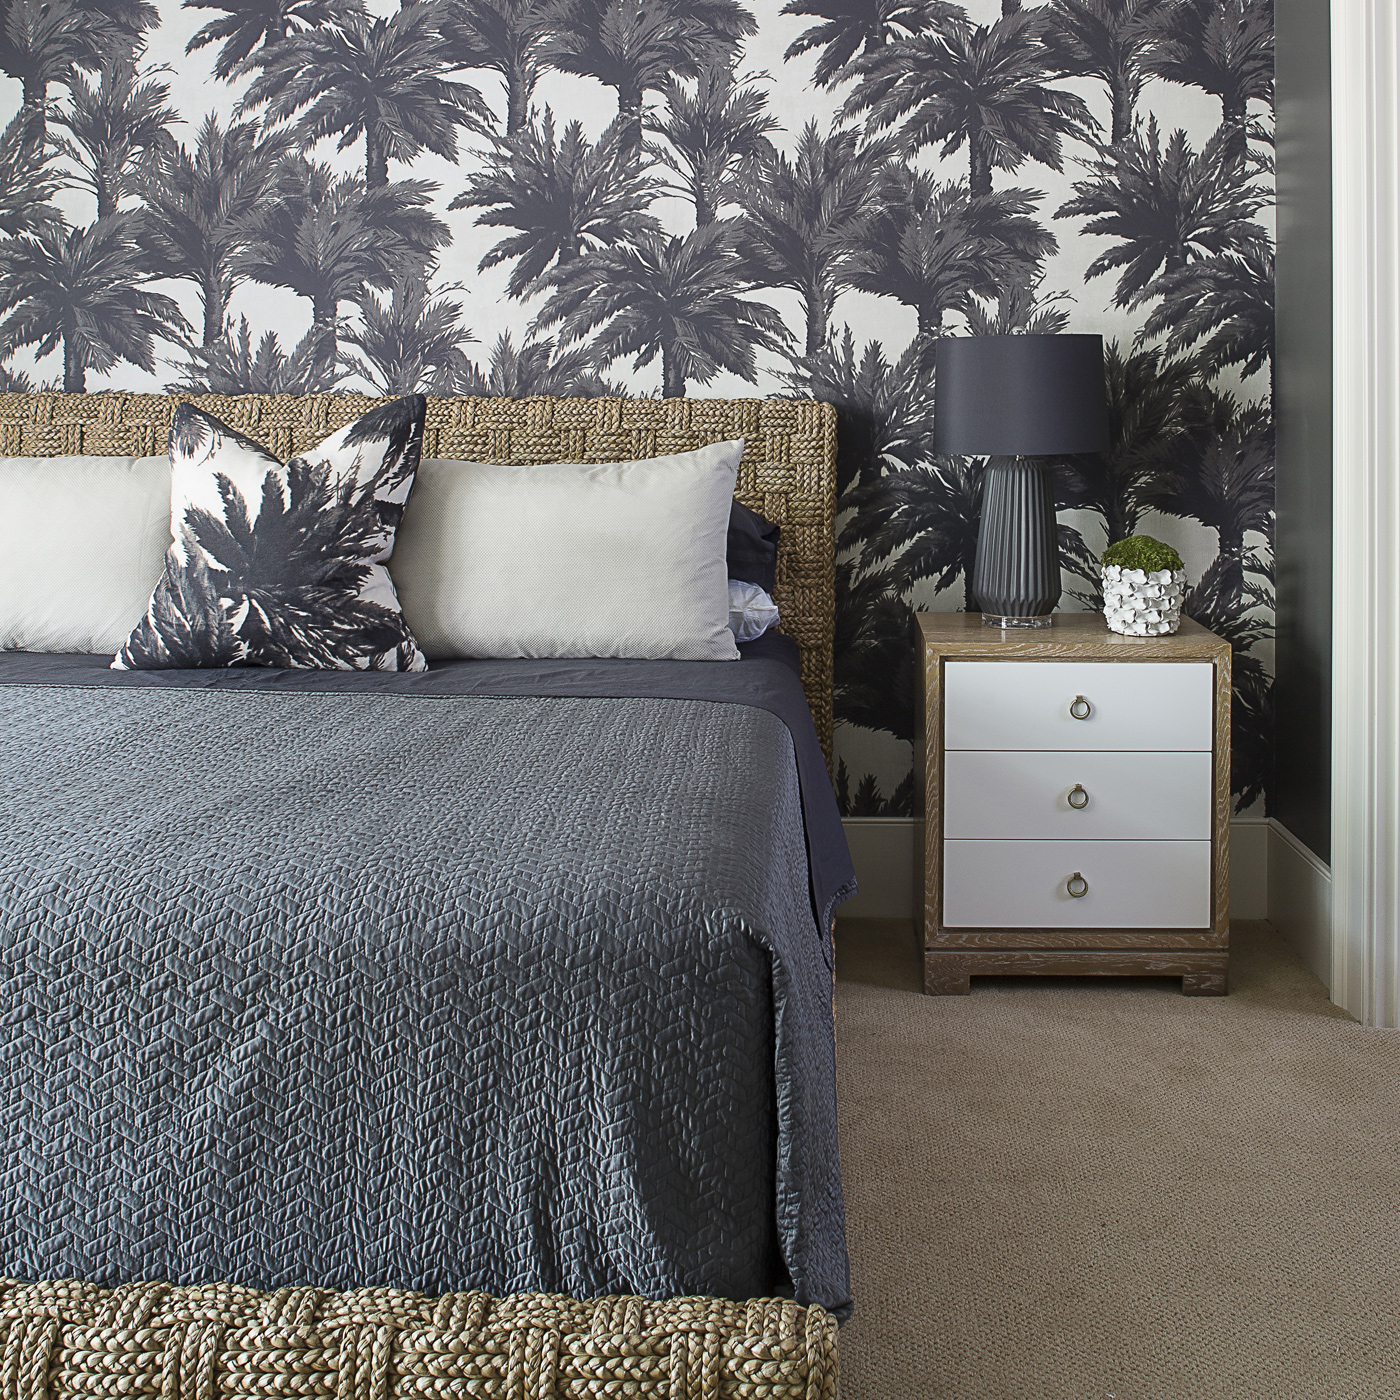 Pierre Frey palm tree fabric on wall and pillow; cerused table; natural woven bed; tropical island bedroom | Savage Interior Design